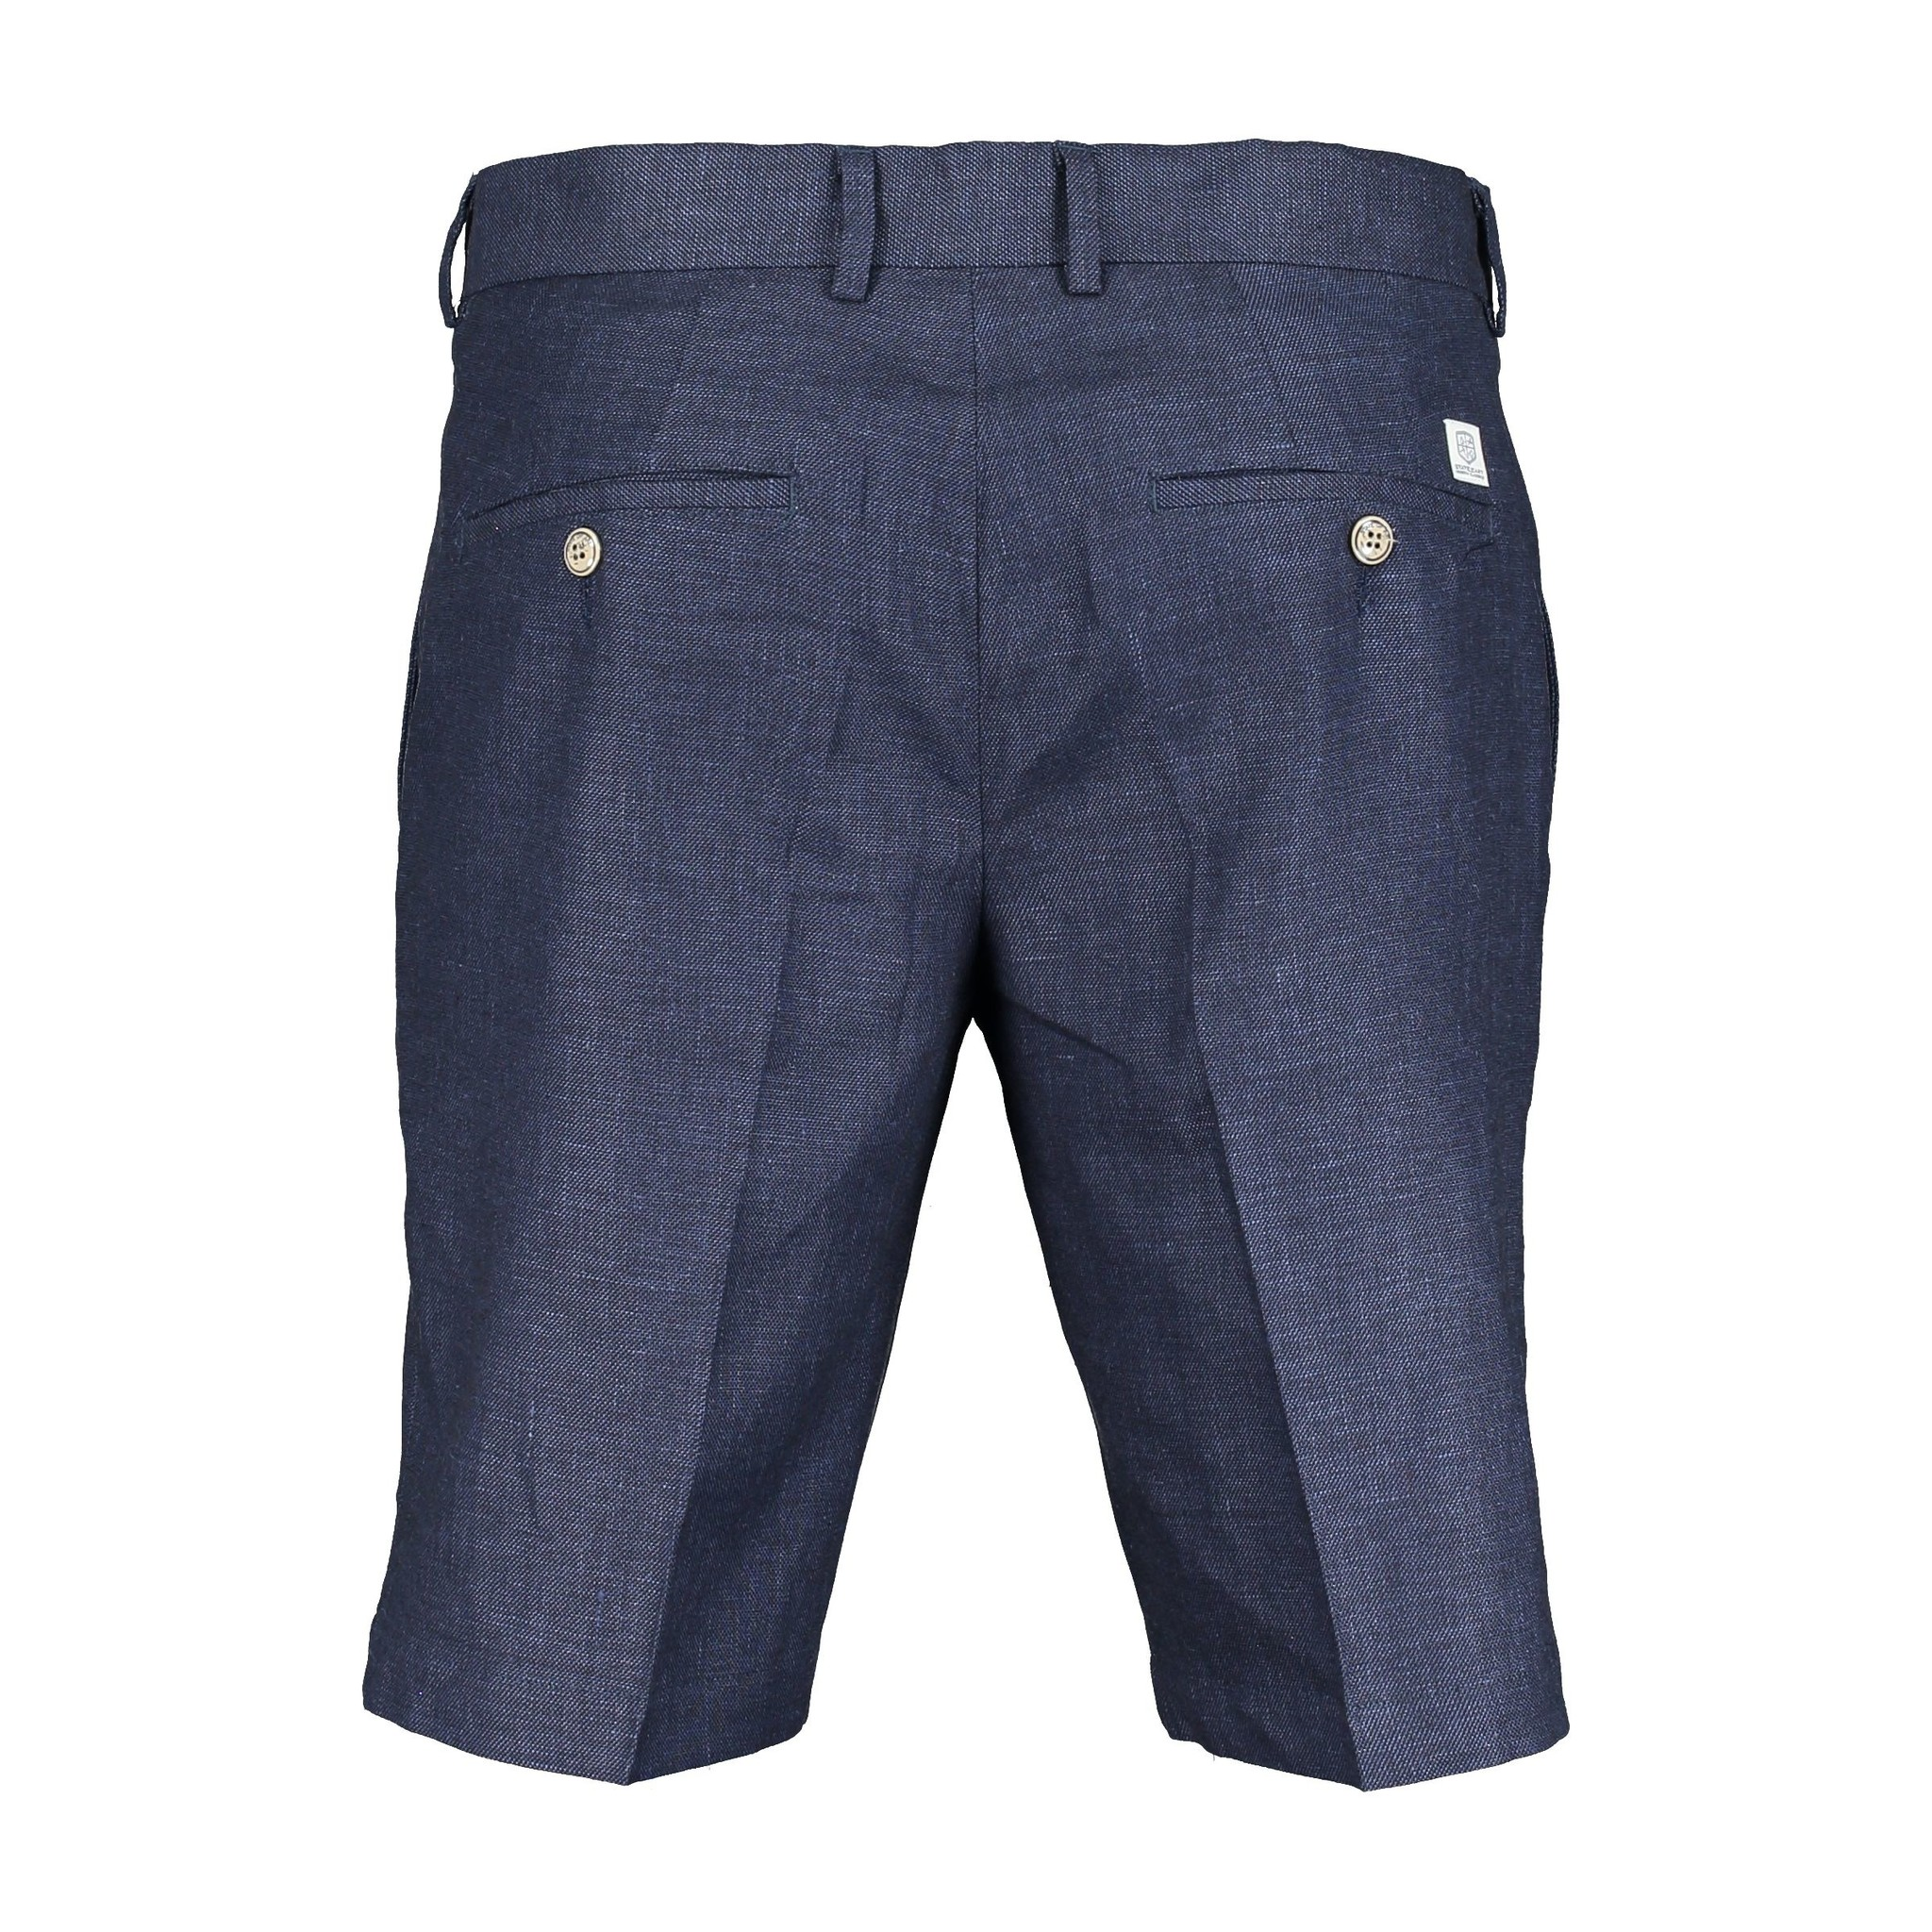 State of Art shorts State of Art 671-10713-5800